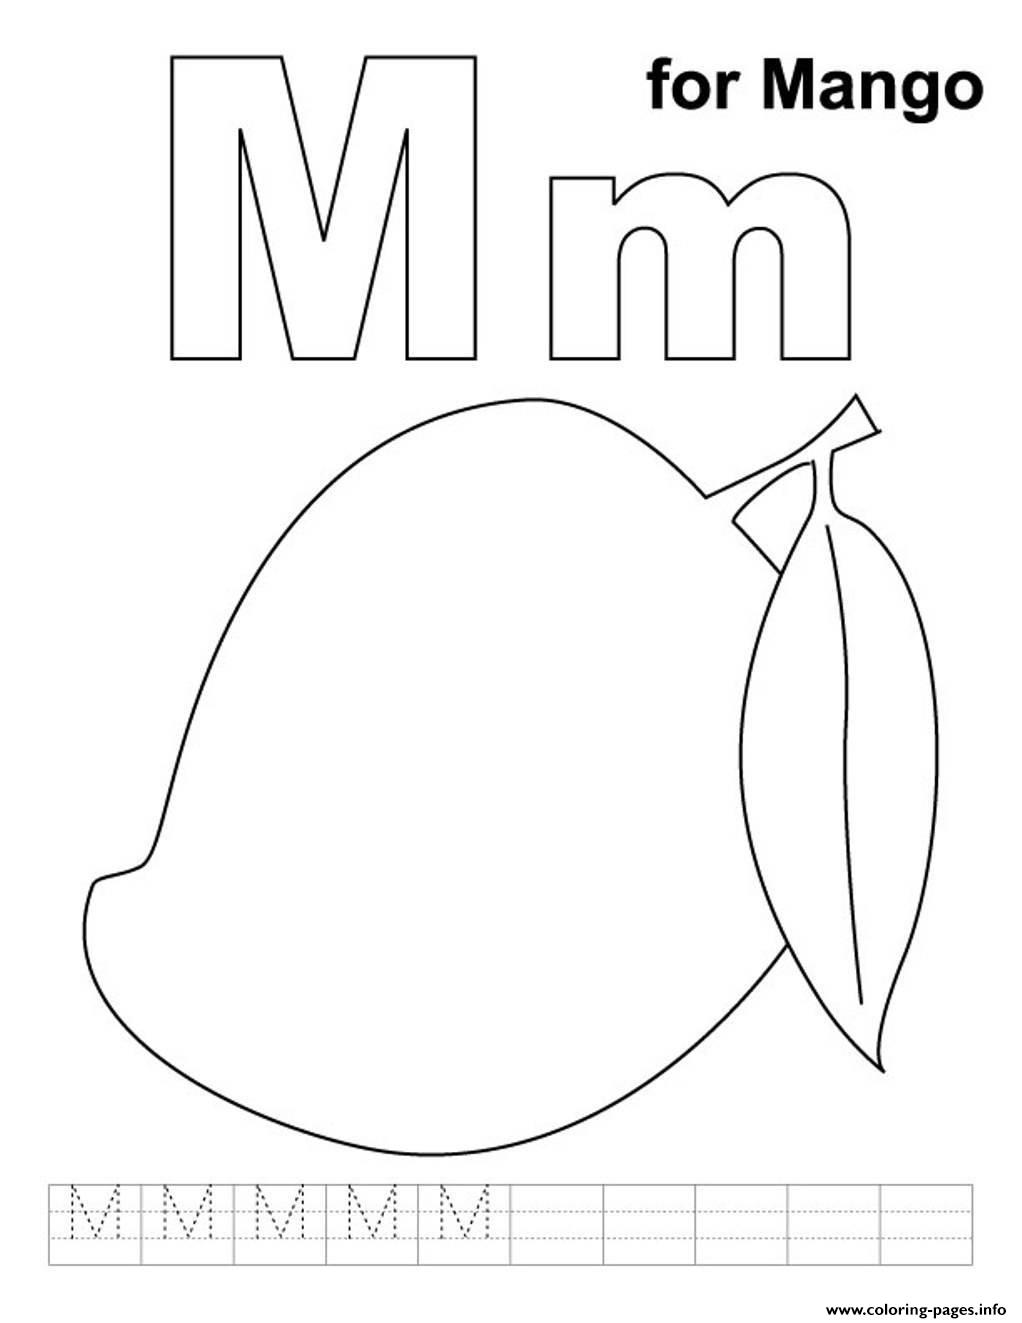 Mango Free Alphabet S86ed coloring pages